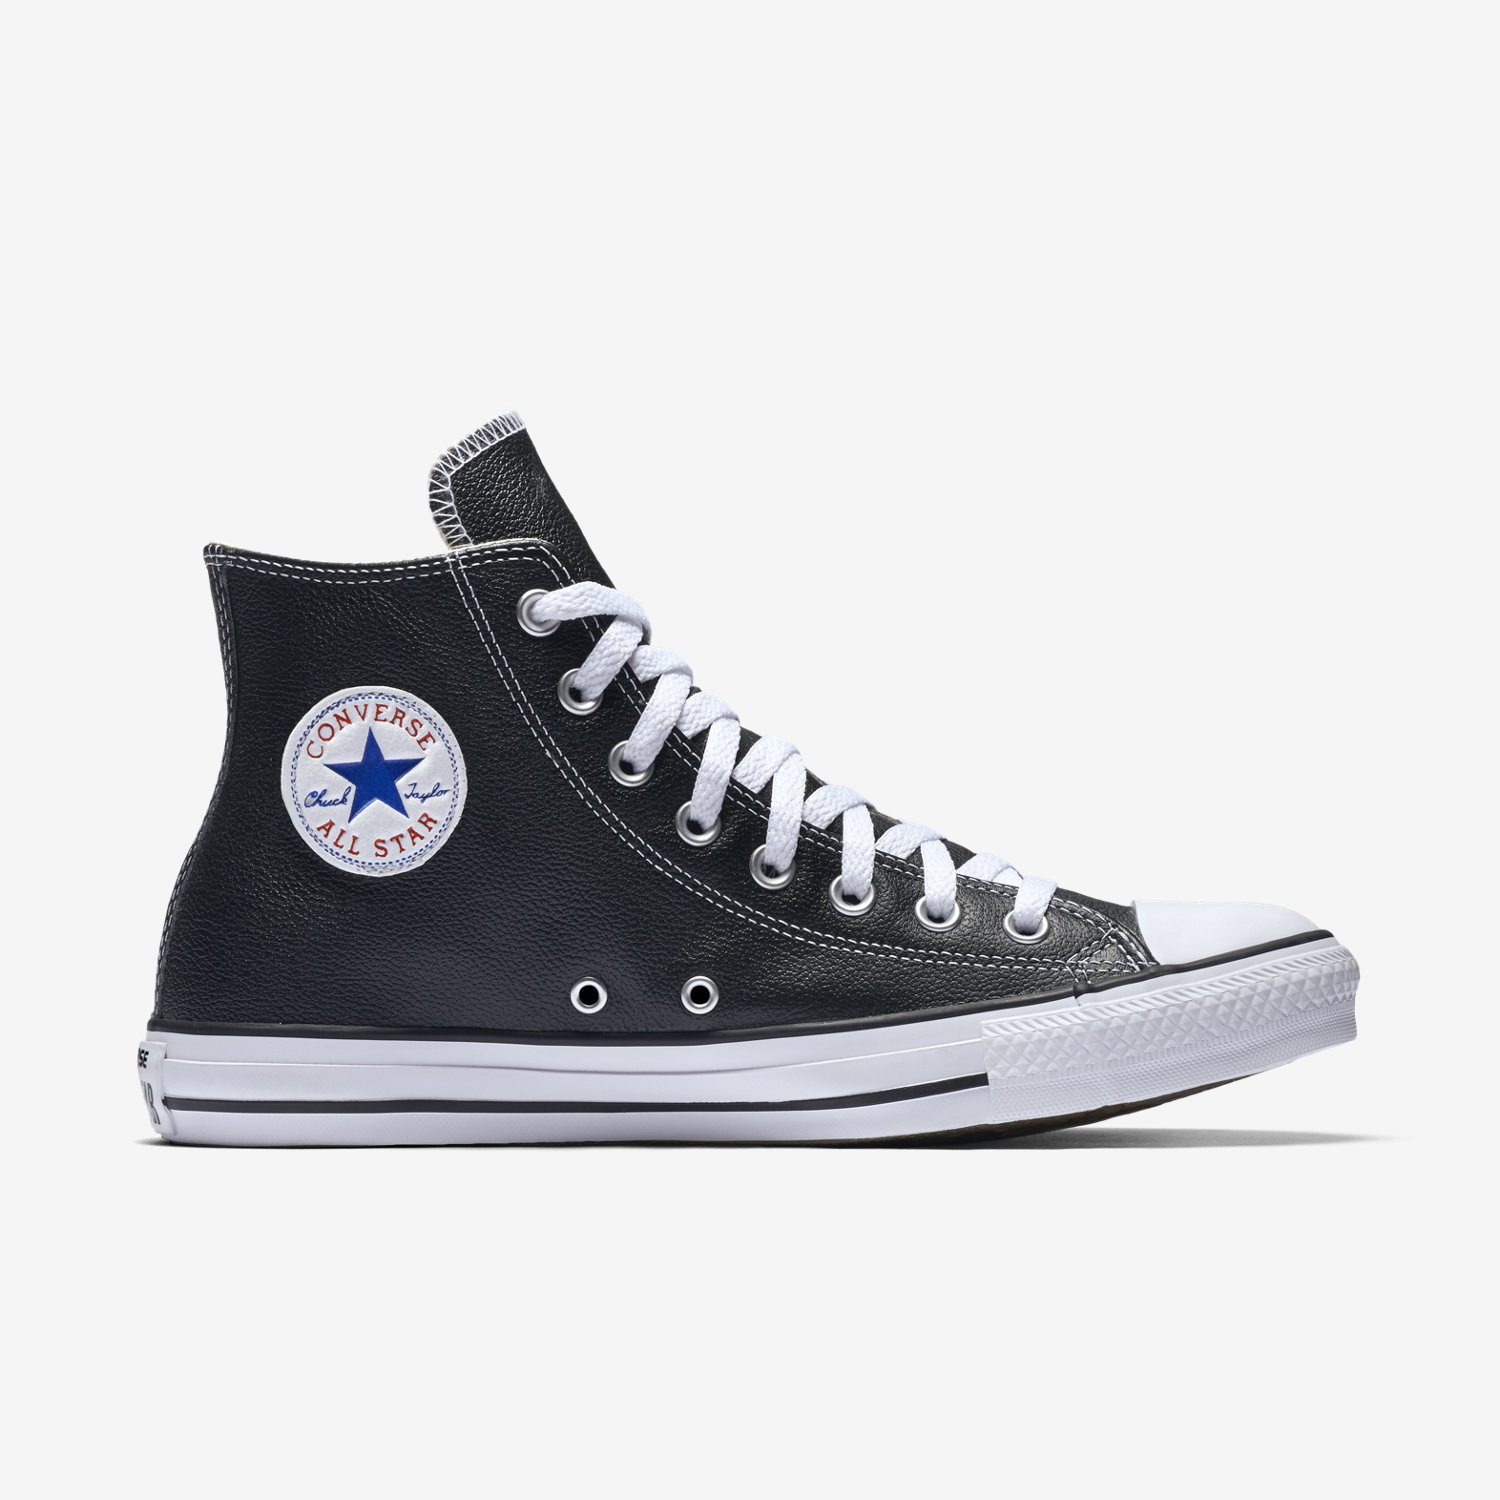 7dd0dd83775f Converse 70S   Buy Discount Shoes from Asics and Converse ...